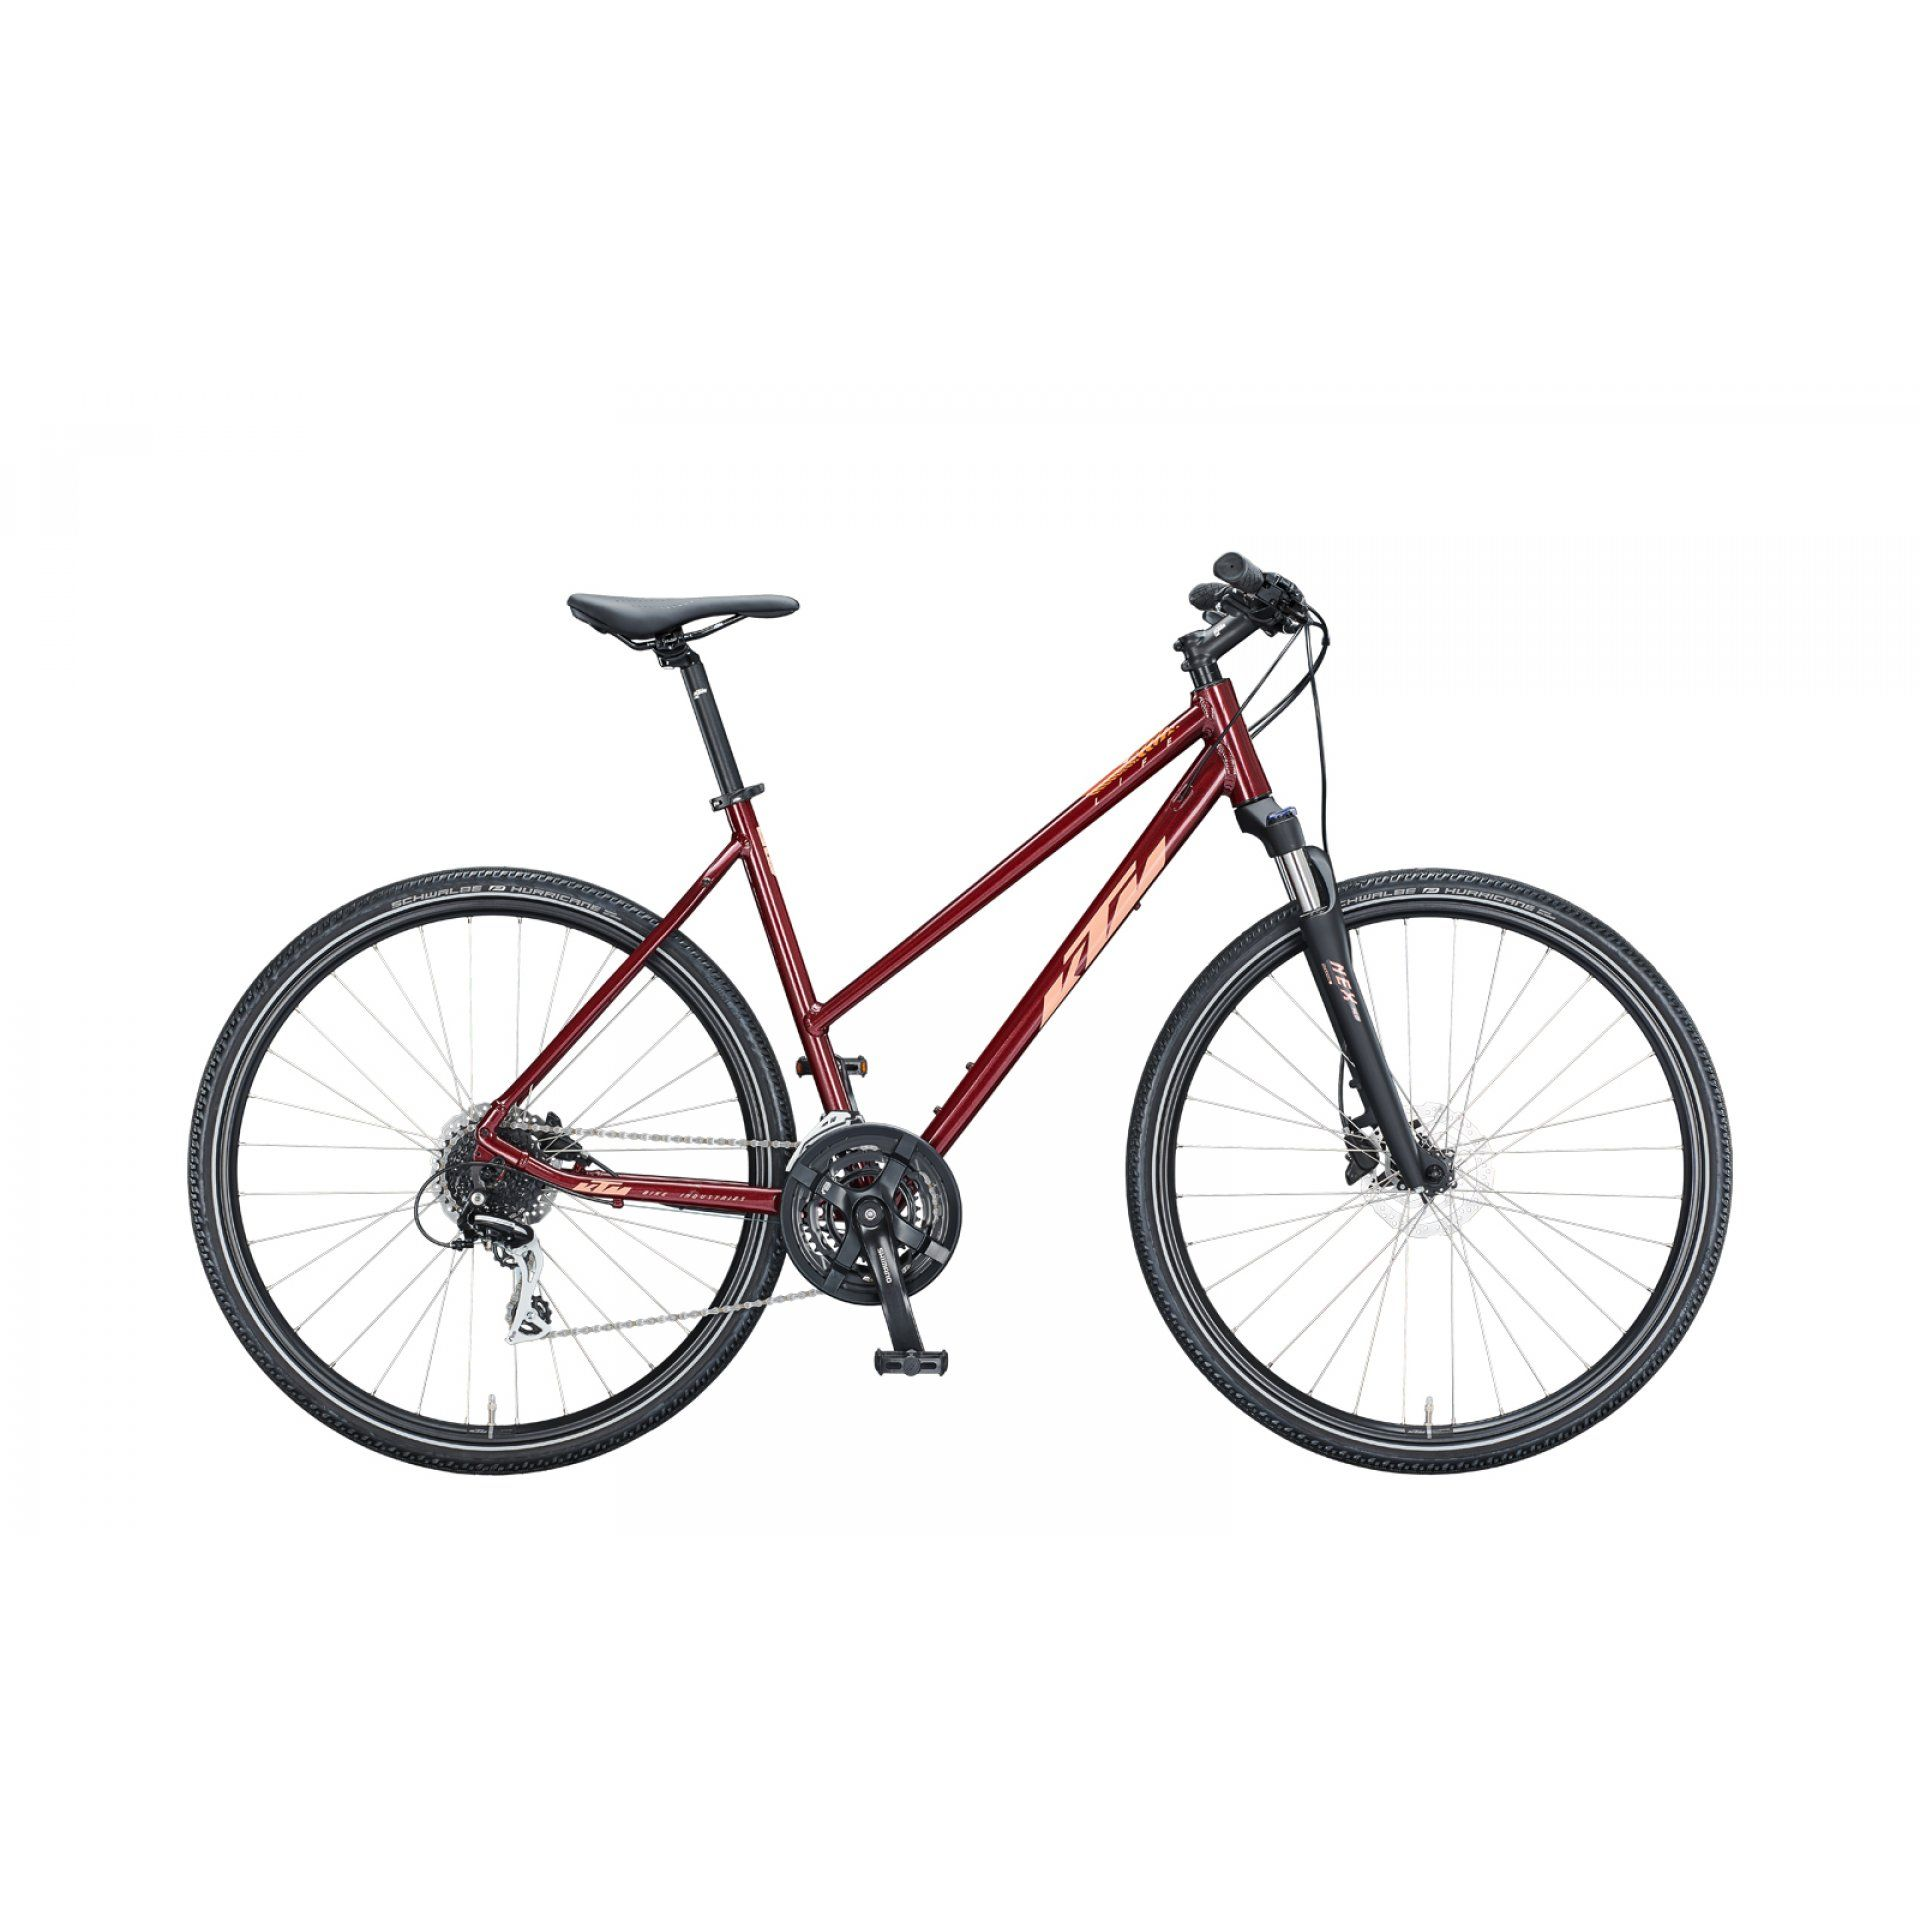 ROWER KTM LIFE TRACK D 021205 DARK RED|CORAL